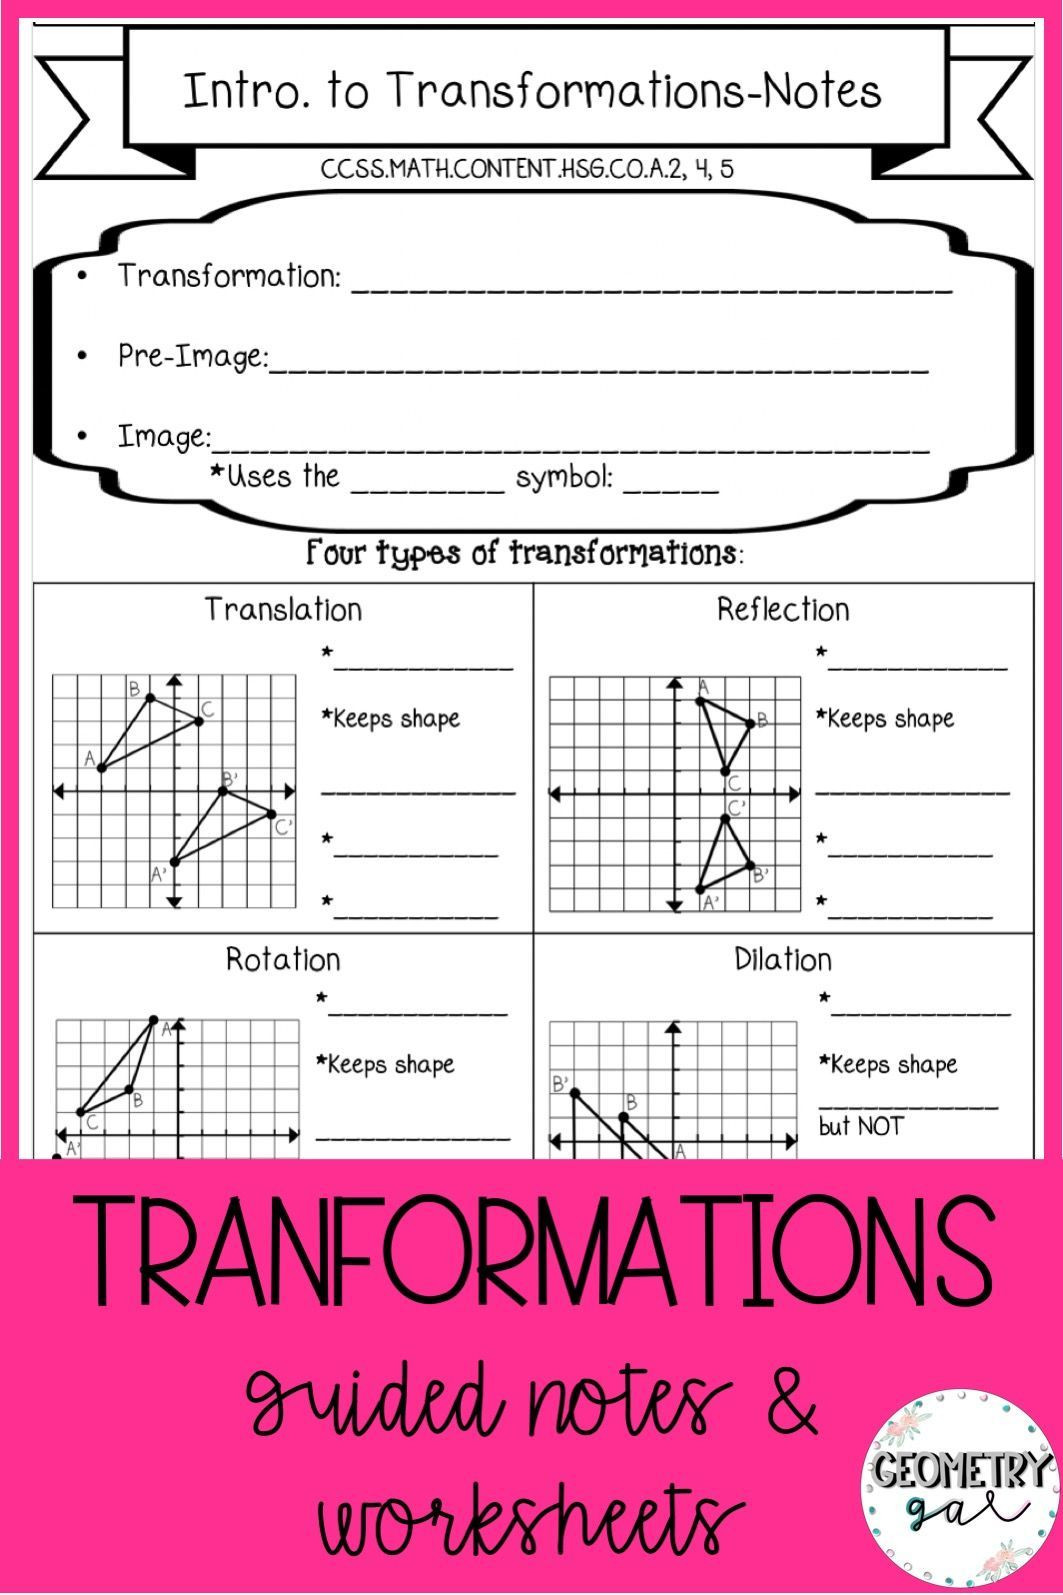 Geometry Transformations Worksheet Answers Geometry Transformations Guided Notes and Worksheets topics